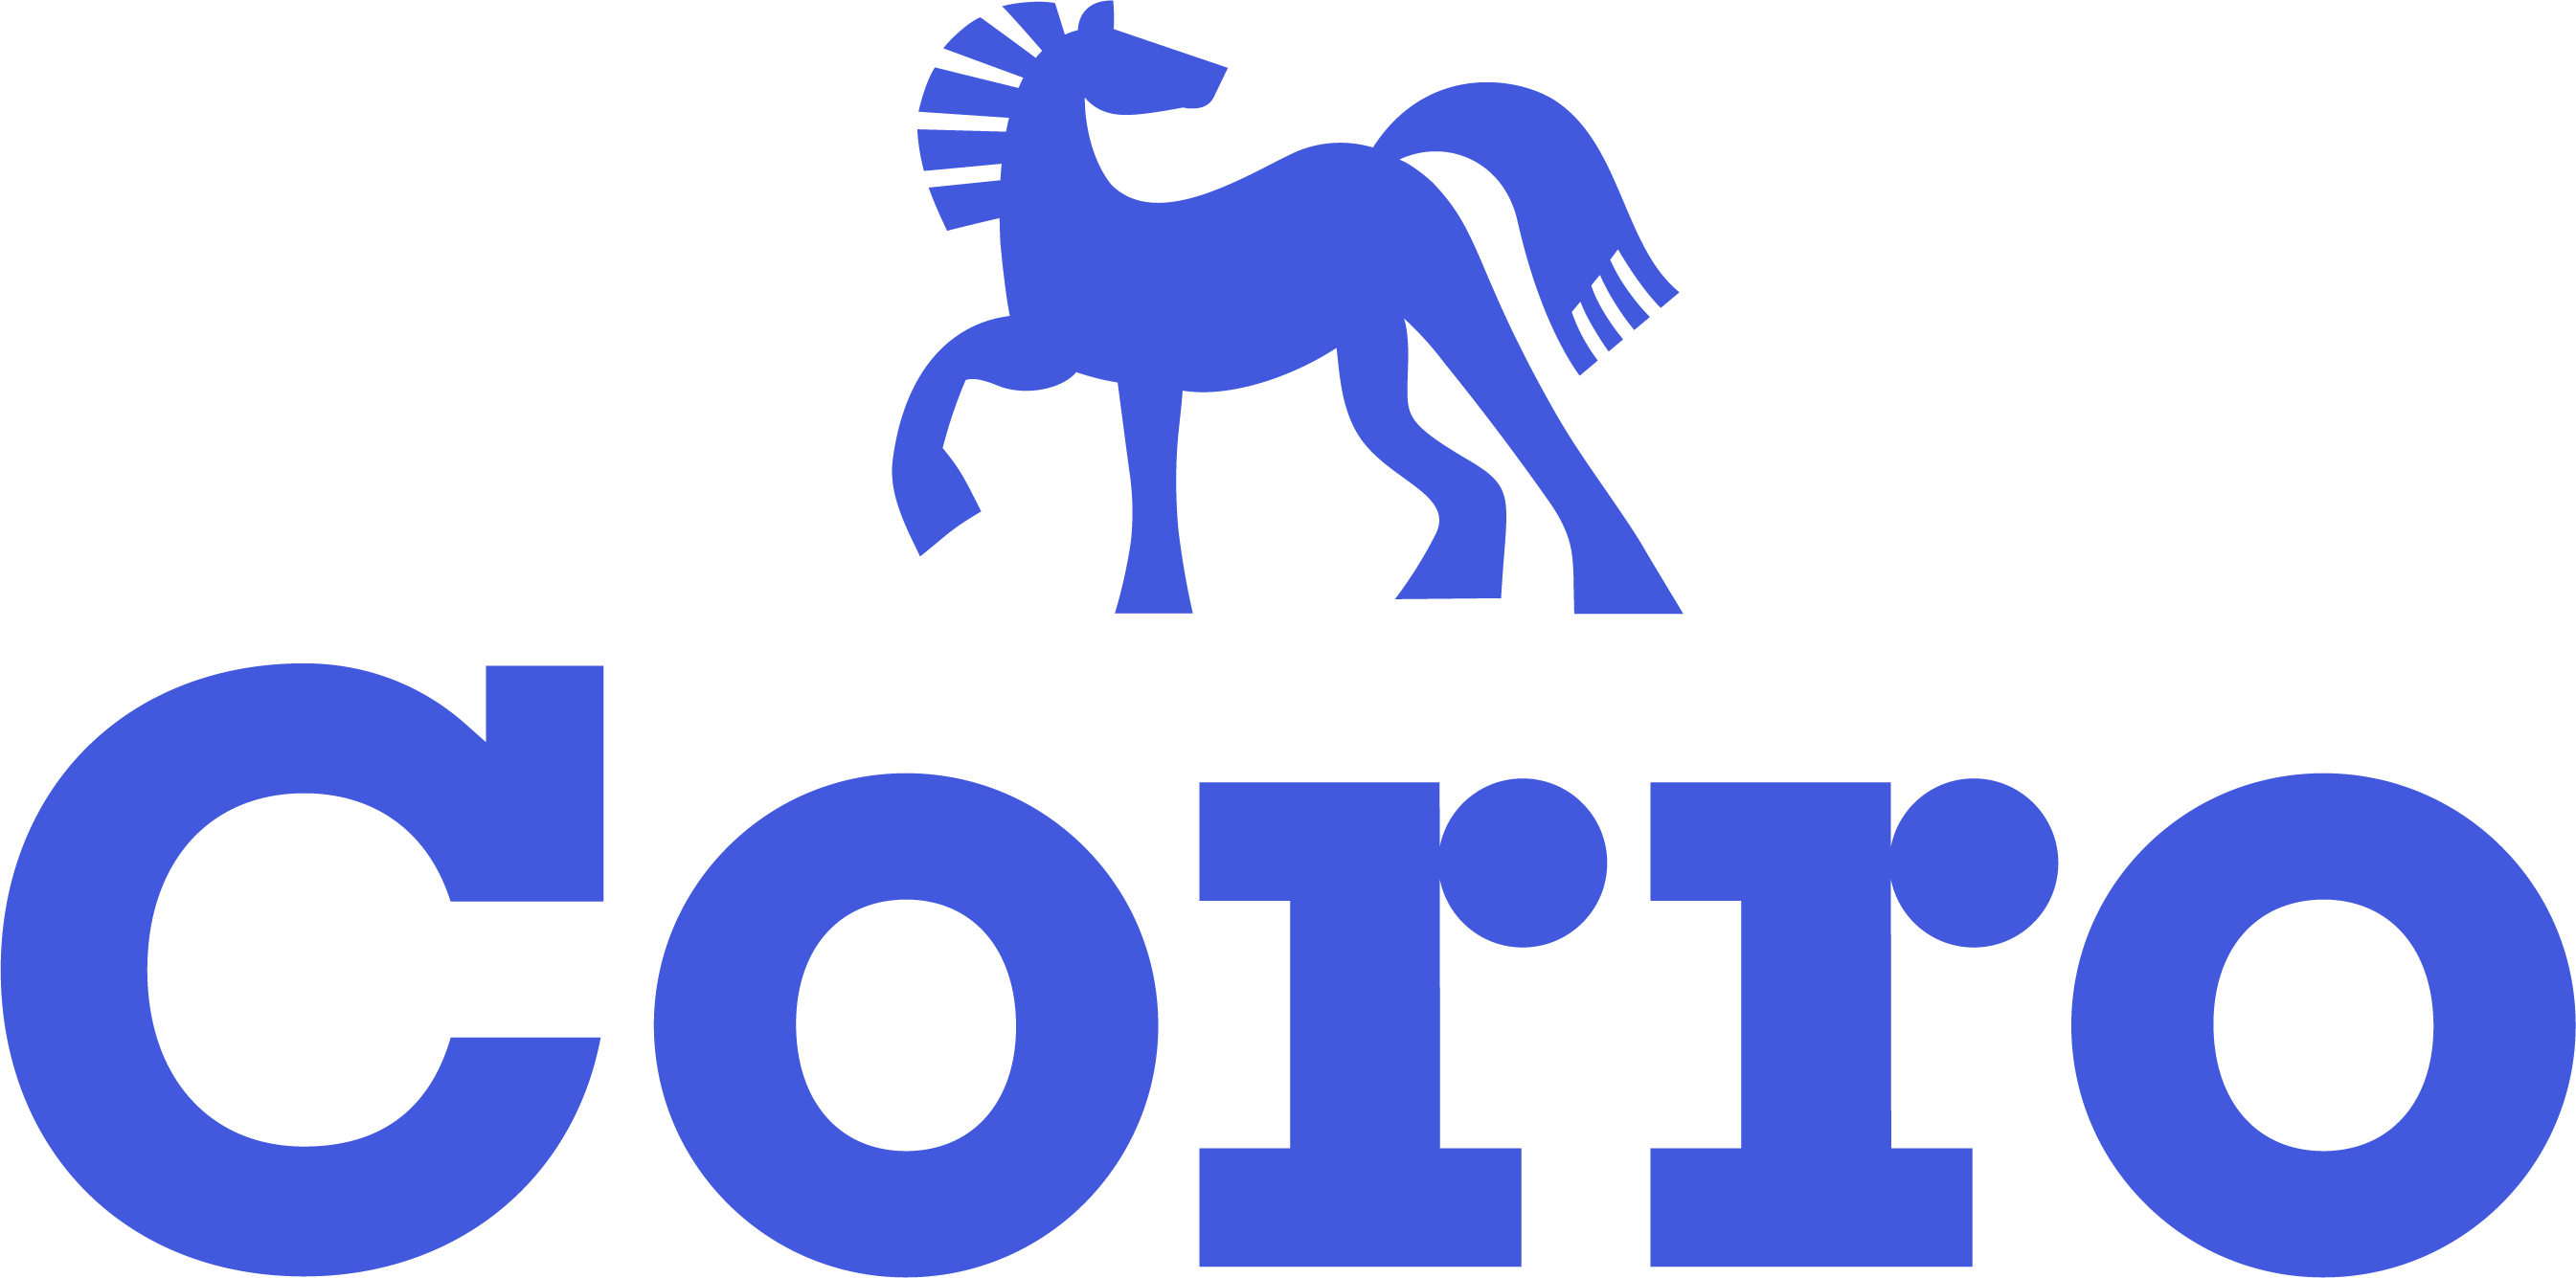 Corro – Your One Source For All Things Horse